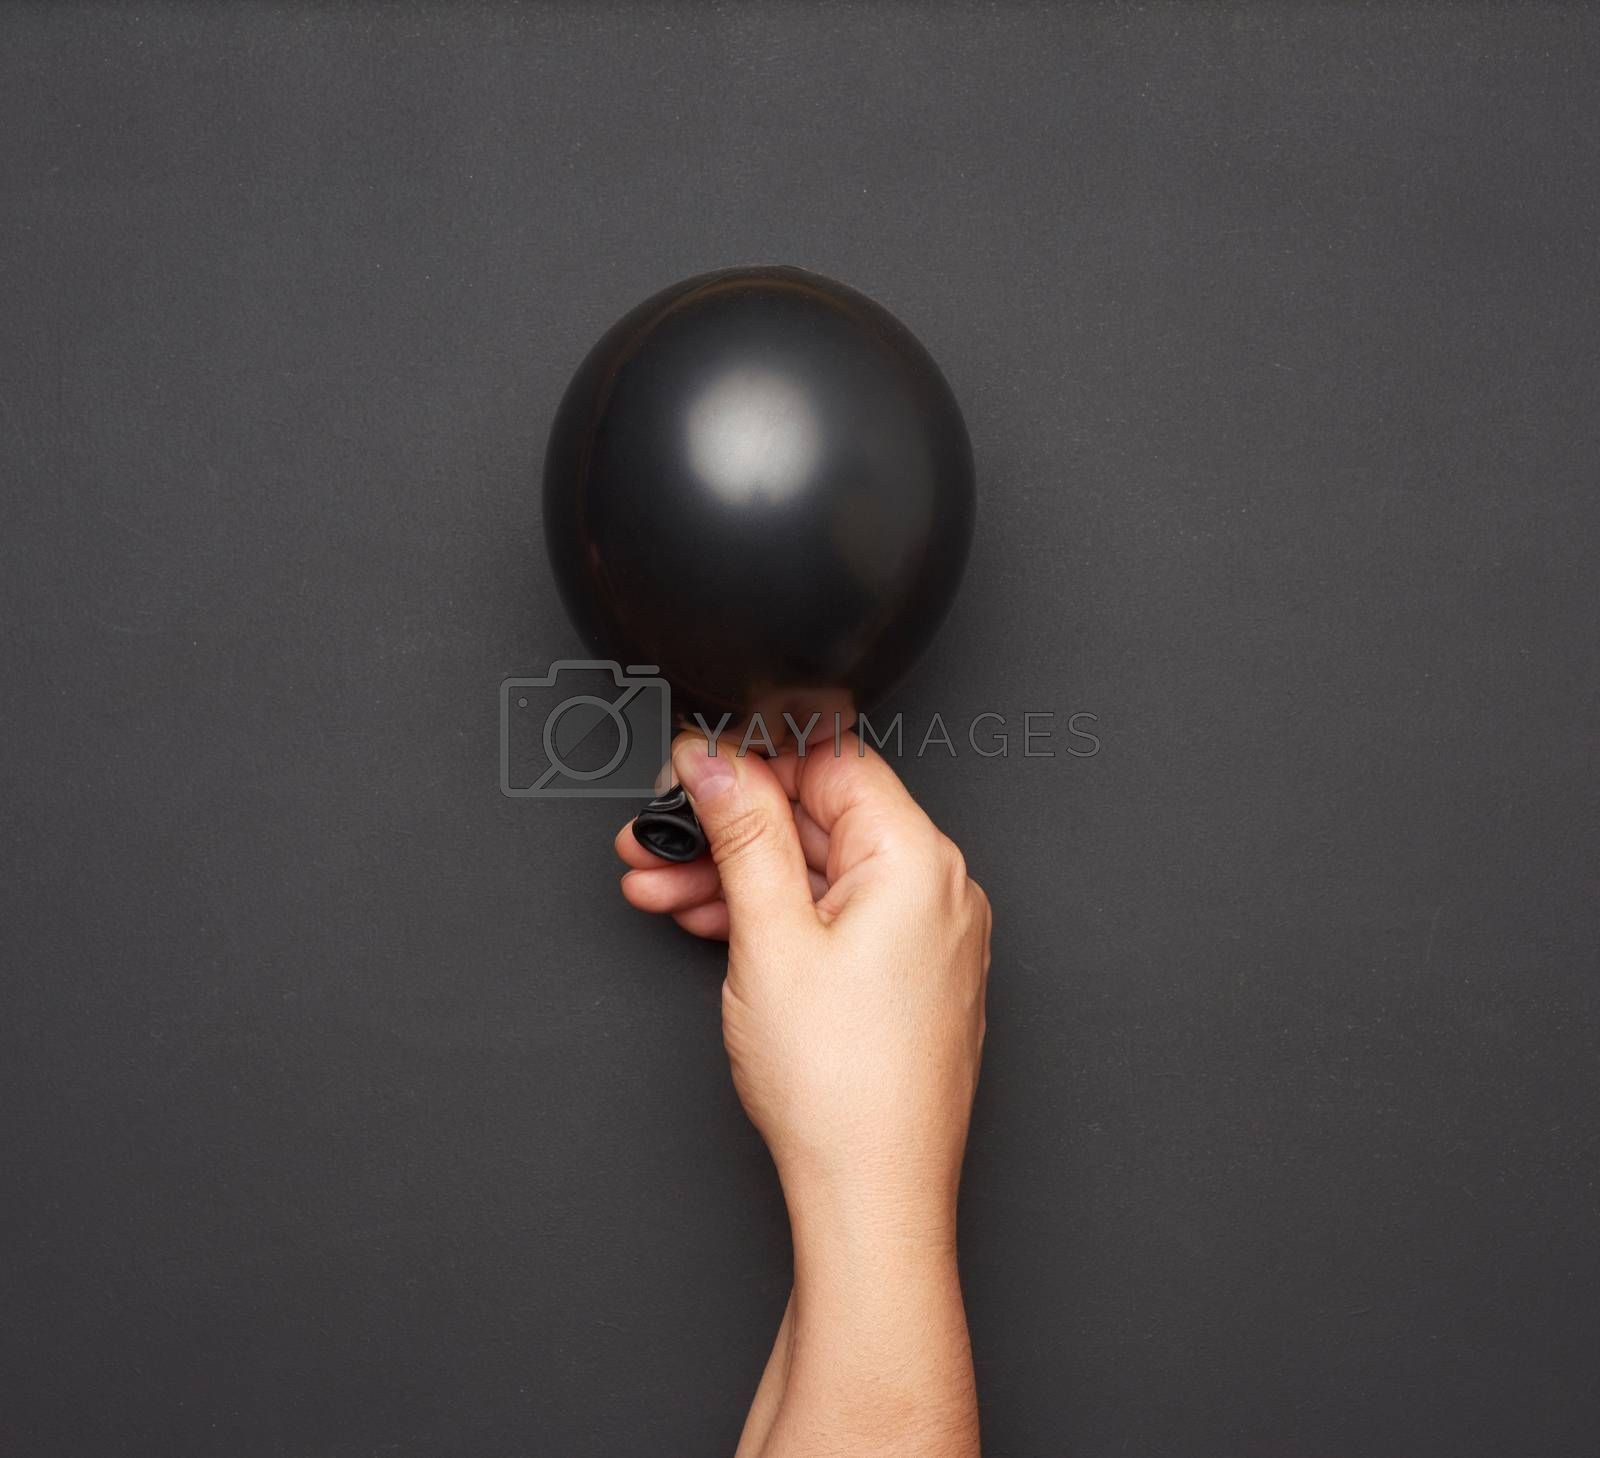 female hand holding an inflated black air balloon on a black background, close up